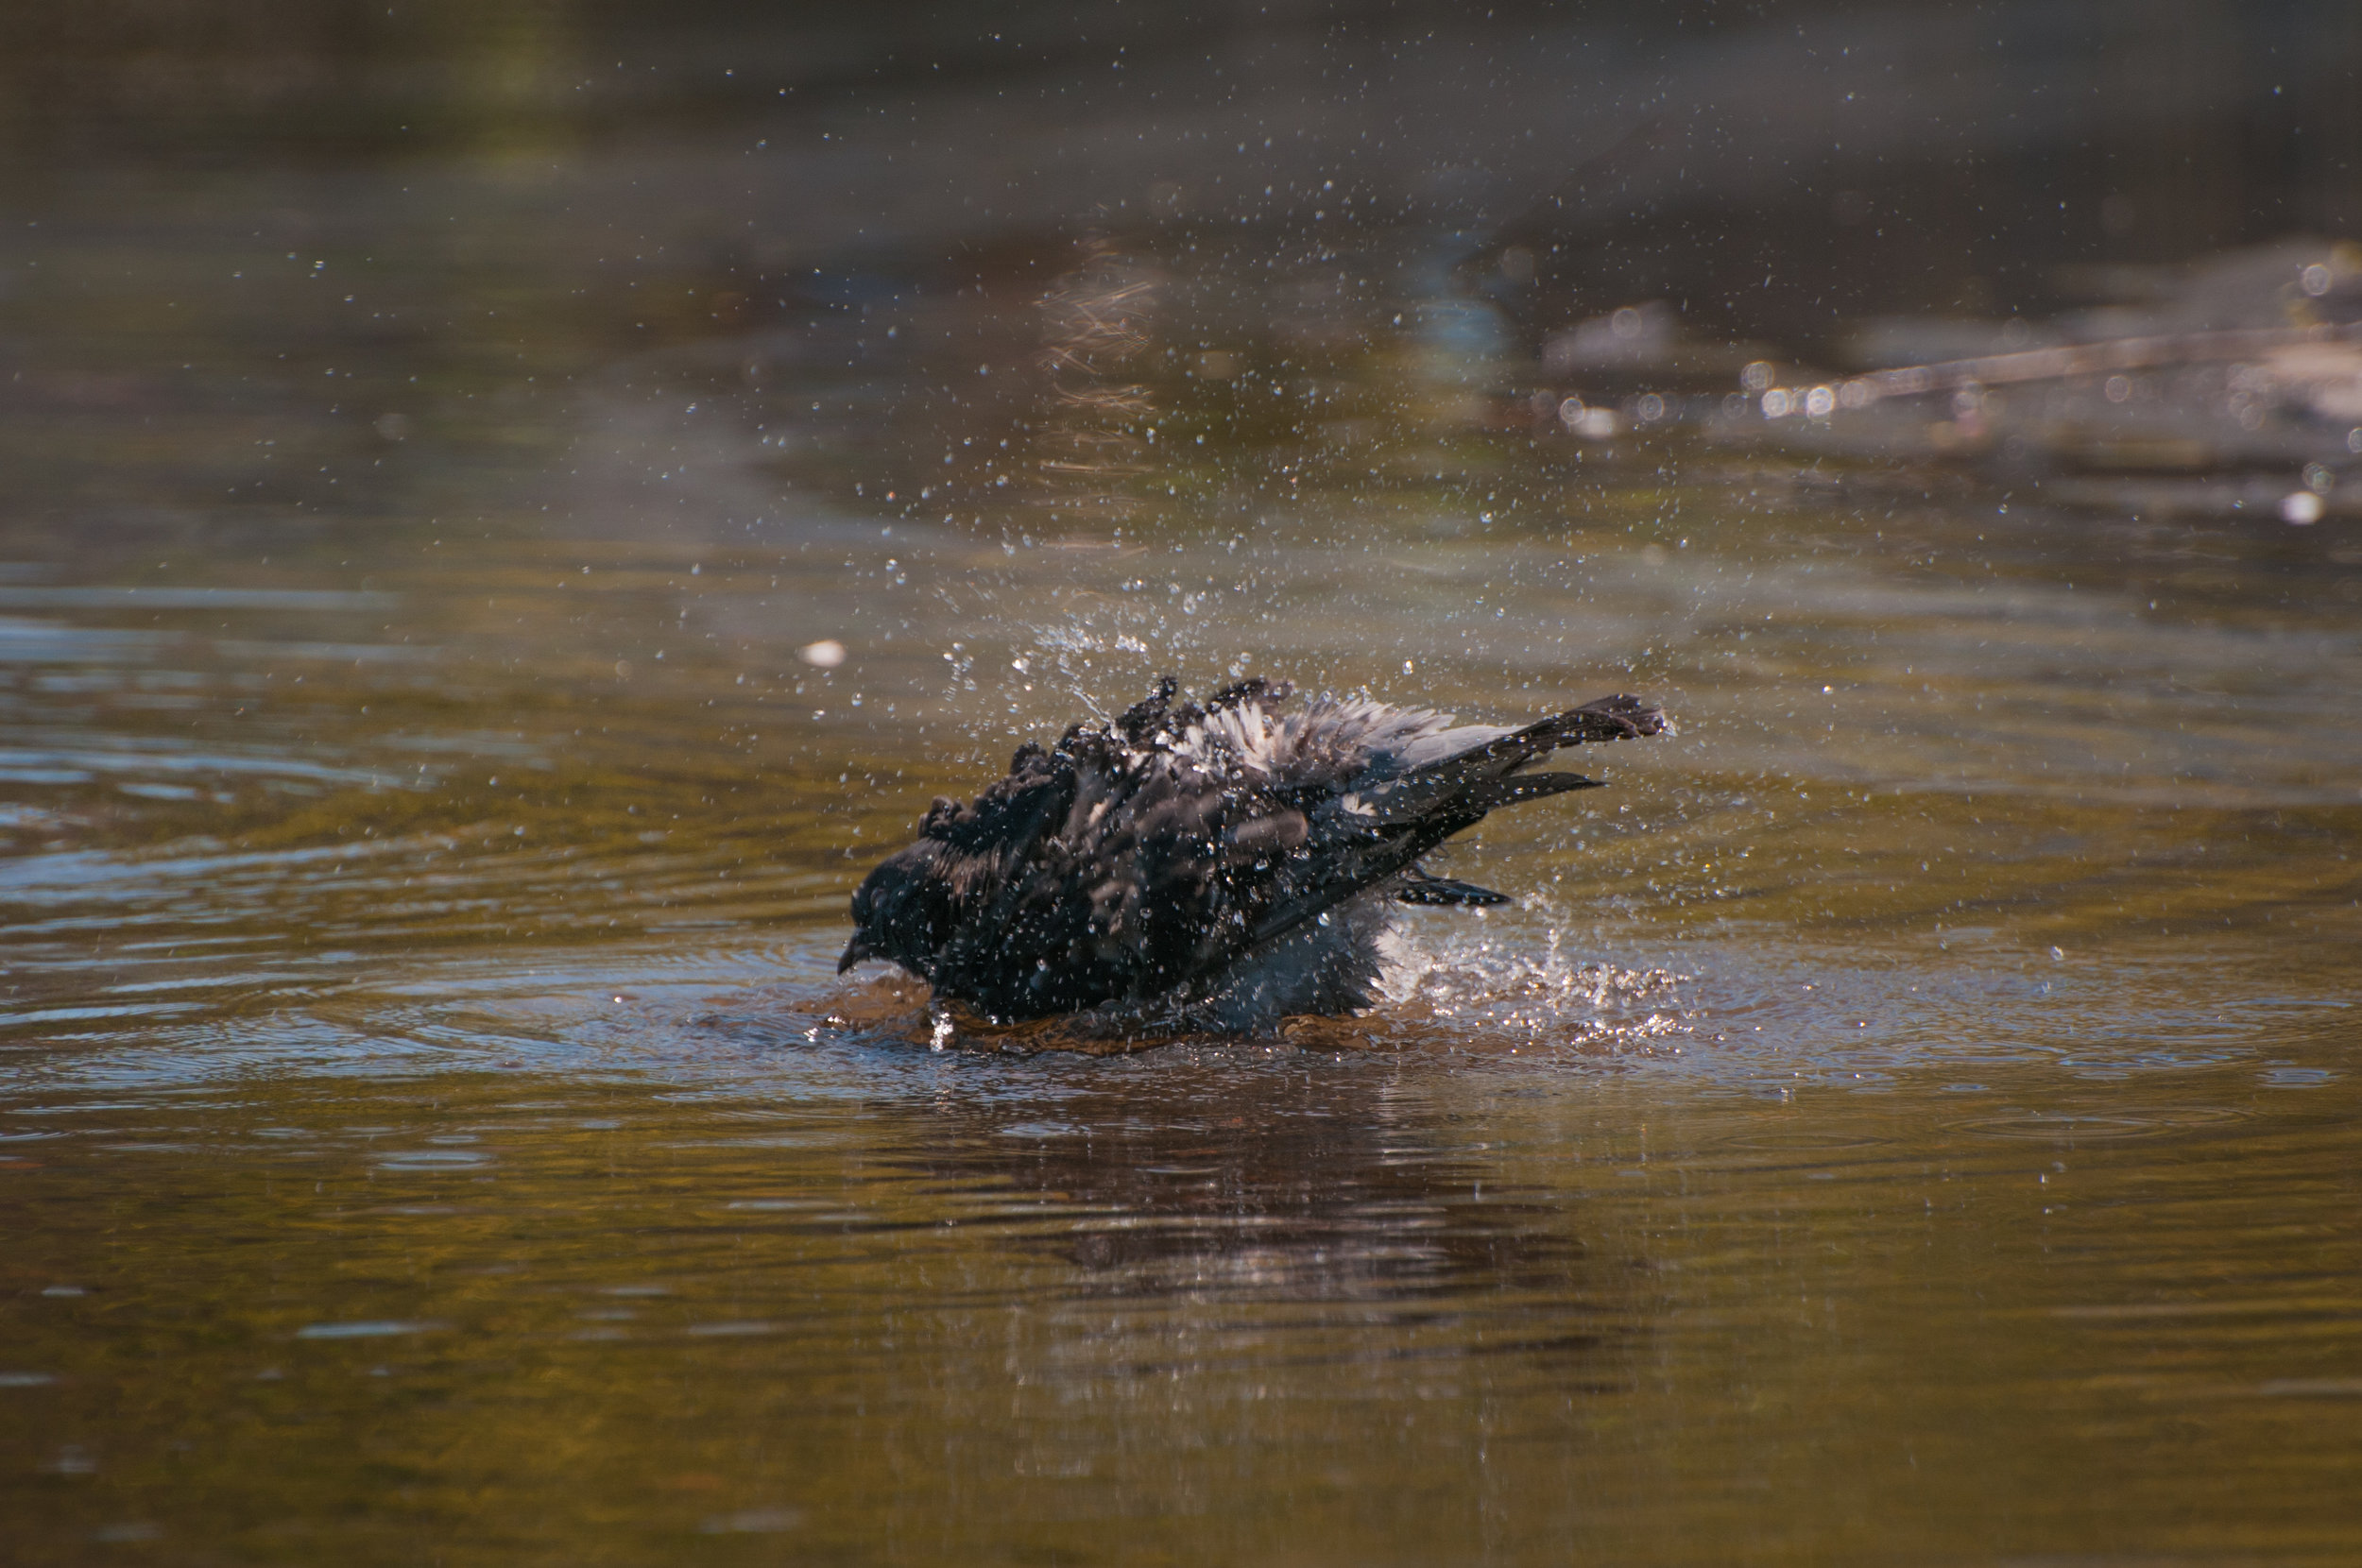 Pigeon taking a bath - 2018 - MAR_8397.jpg